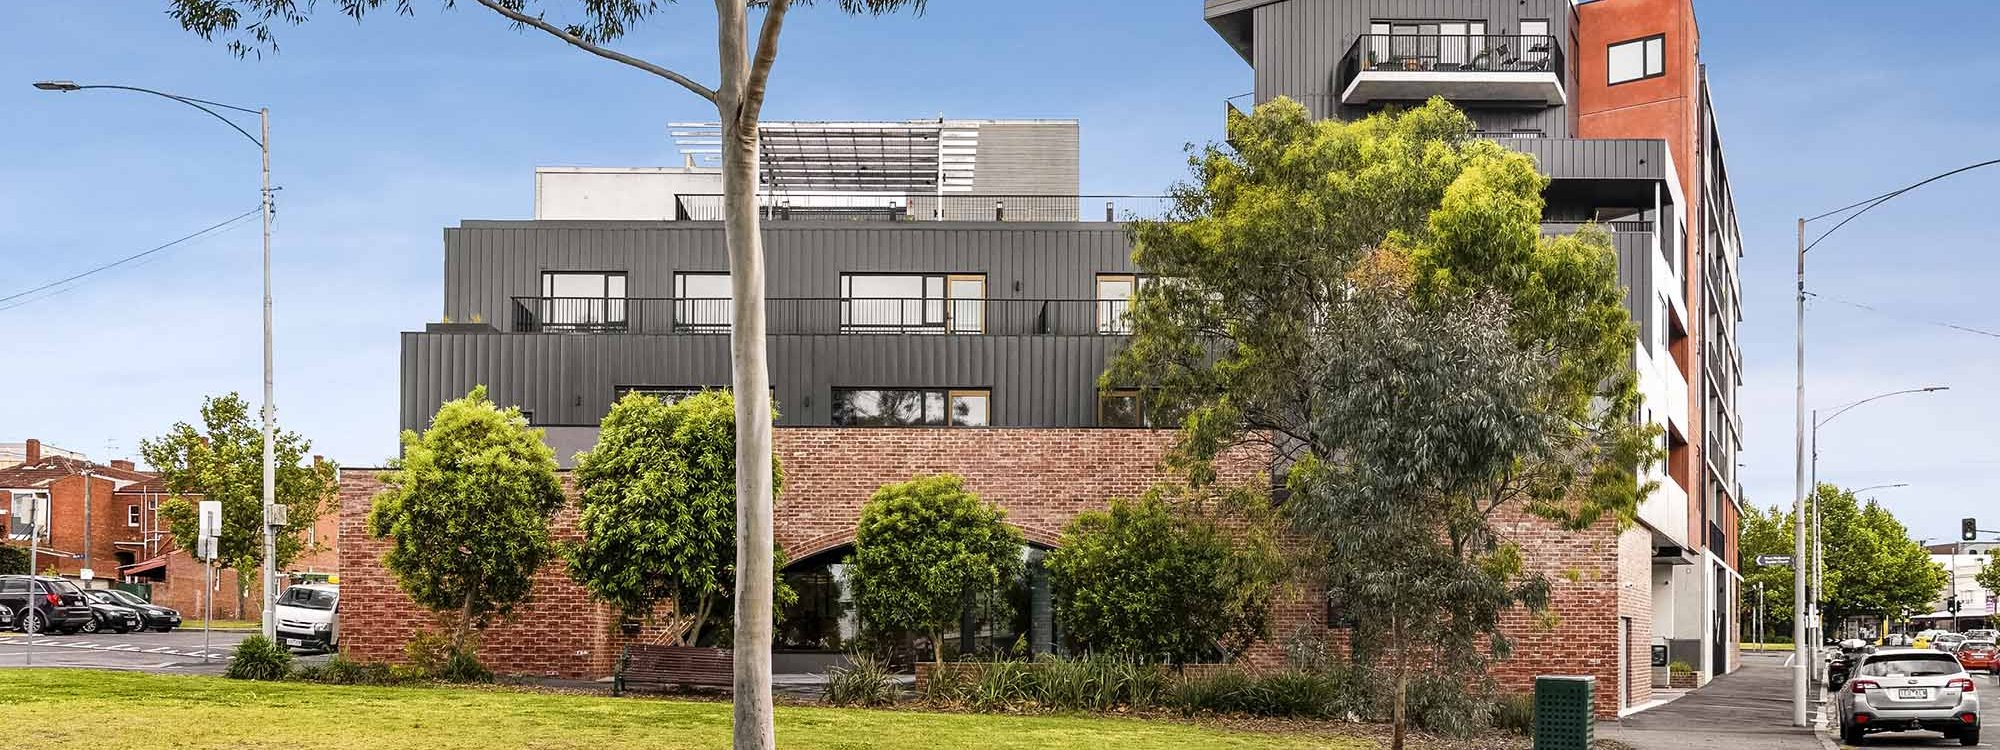 Highviews - Melbourne - Property Side View